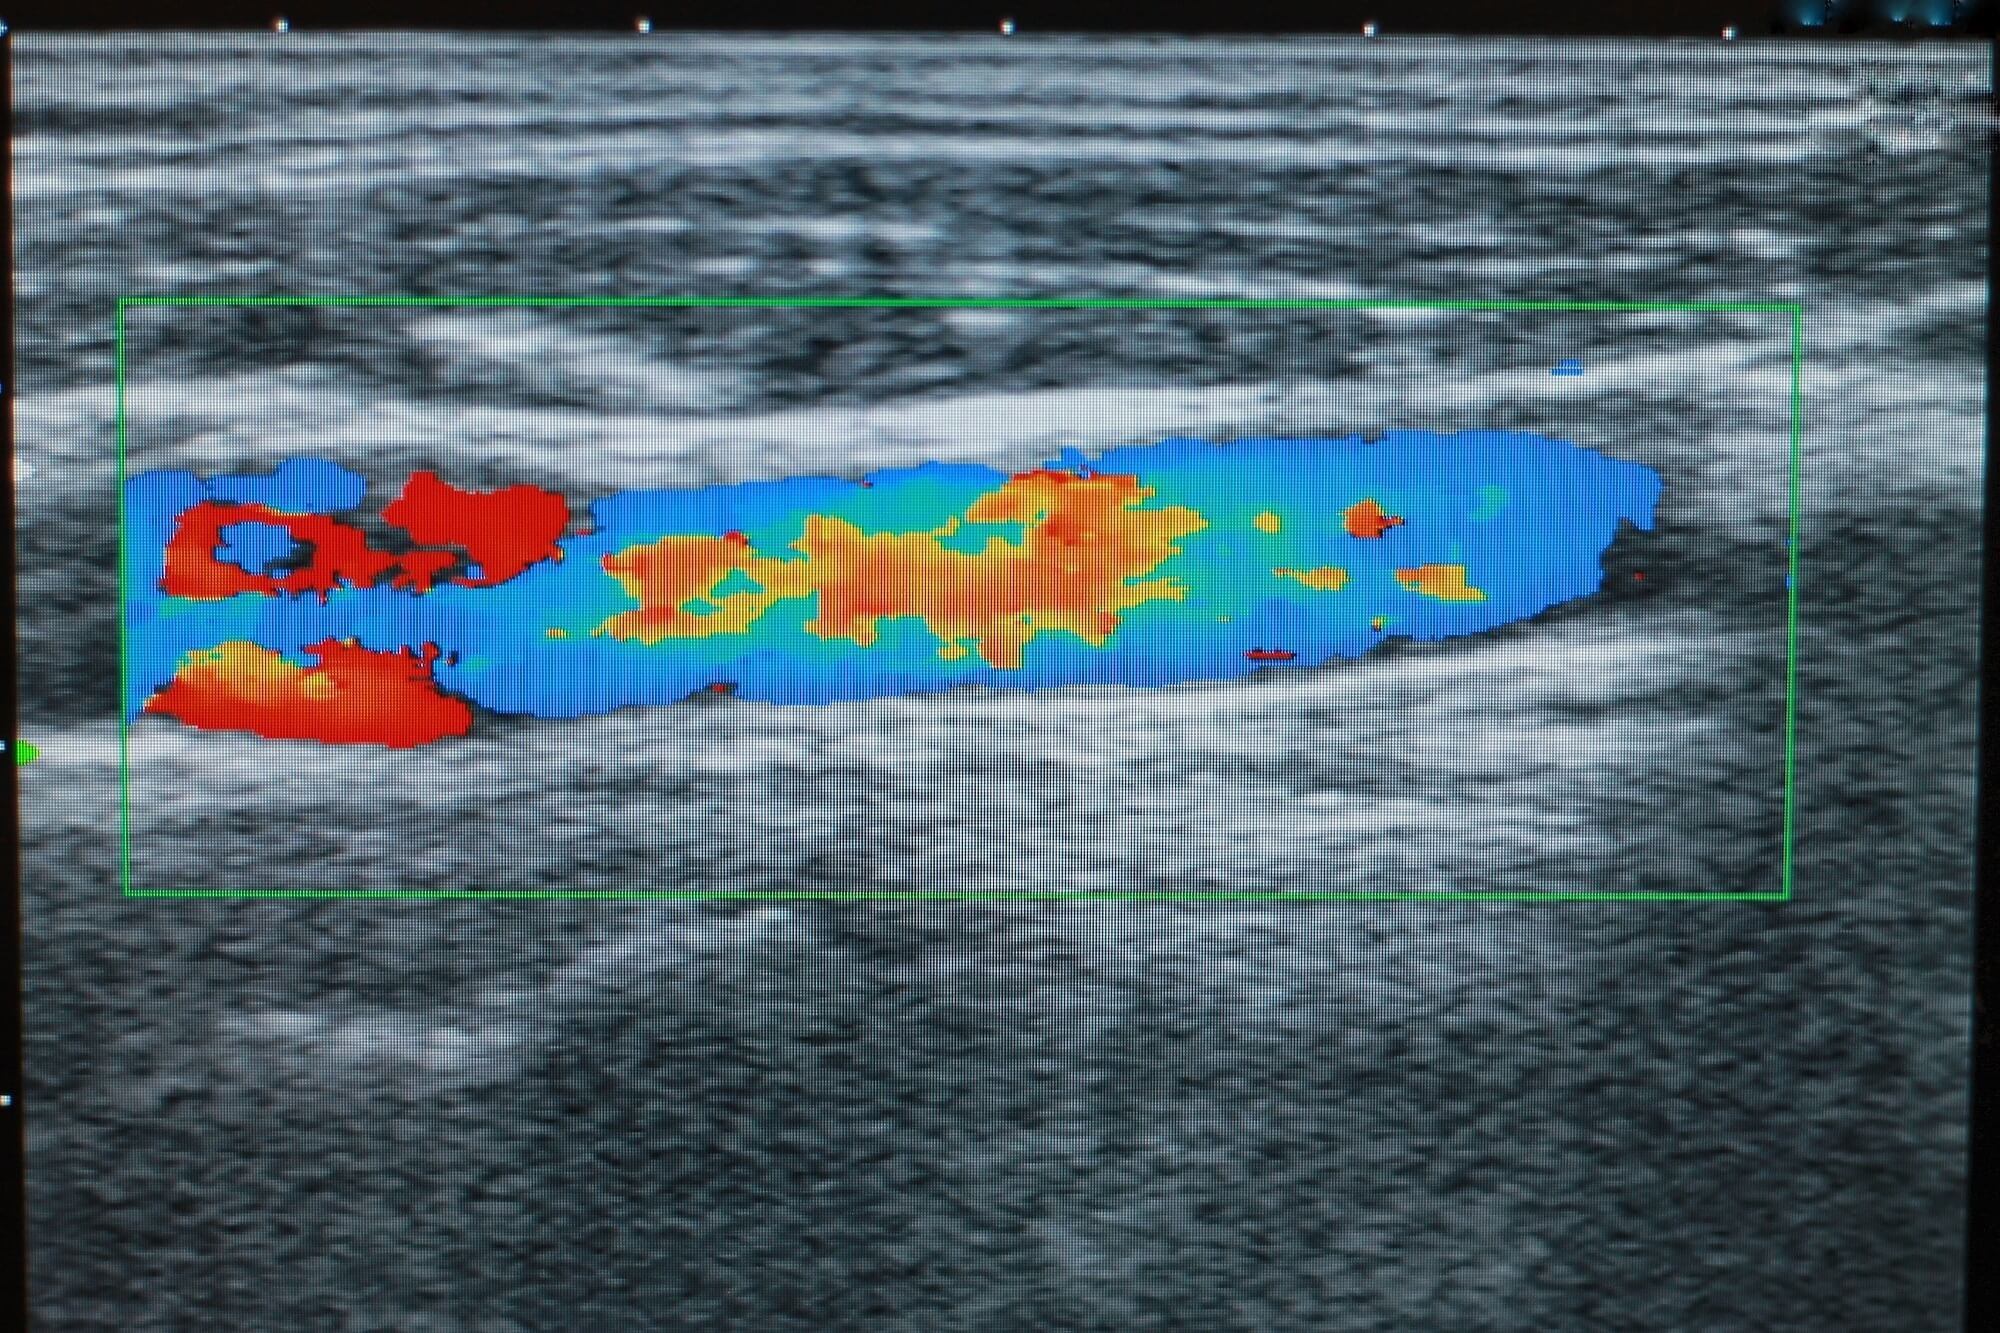 Ultrasound-Based Visualization of Silent Atherosclerosis May Improve Medication Adherence